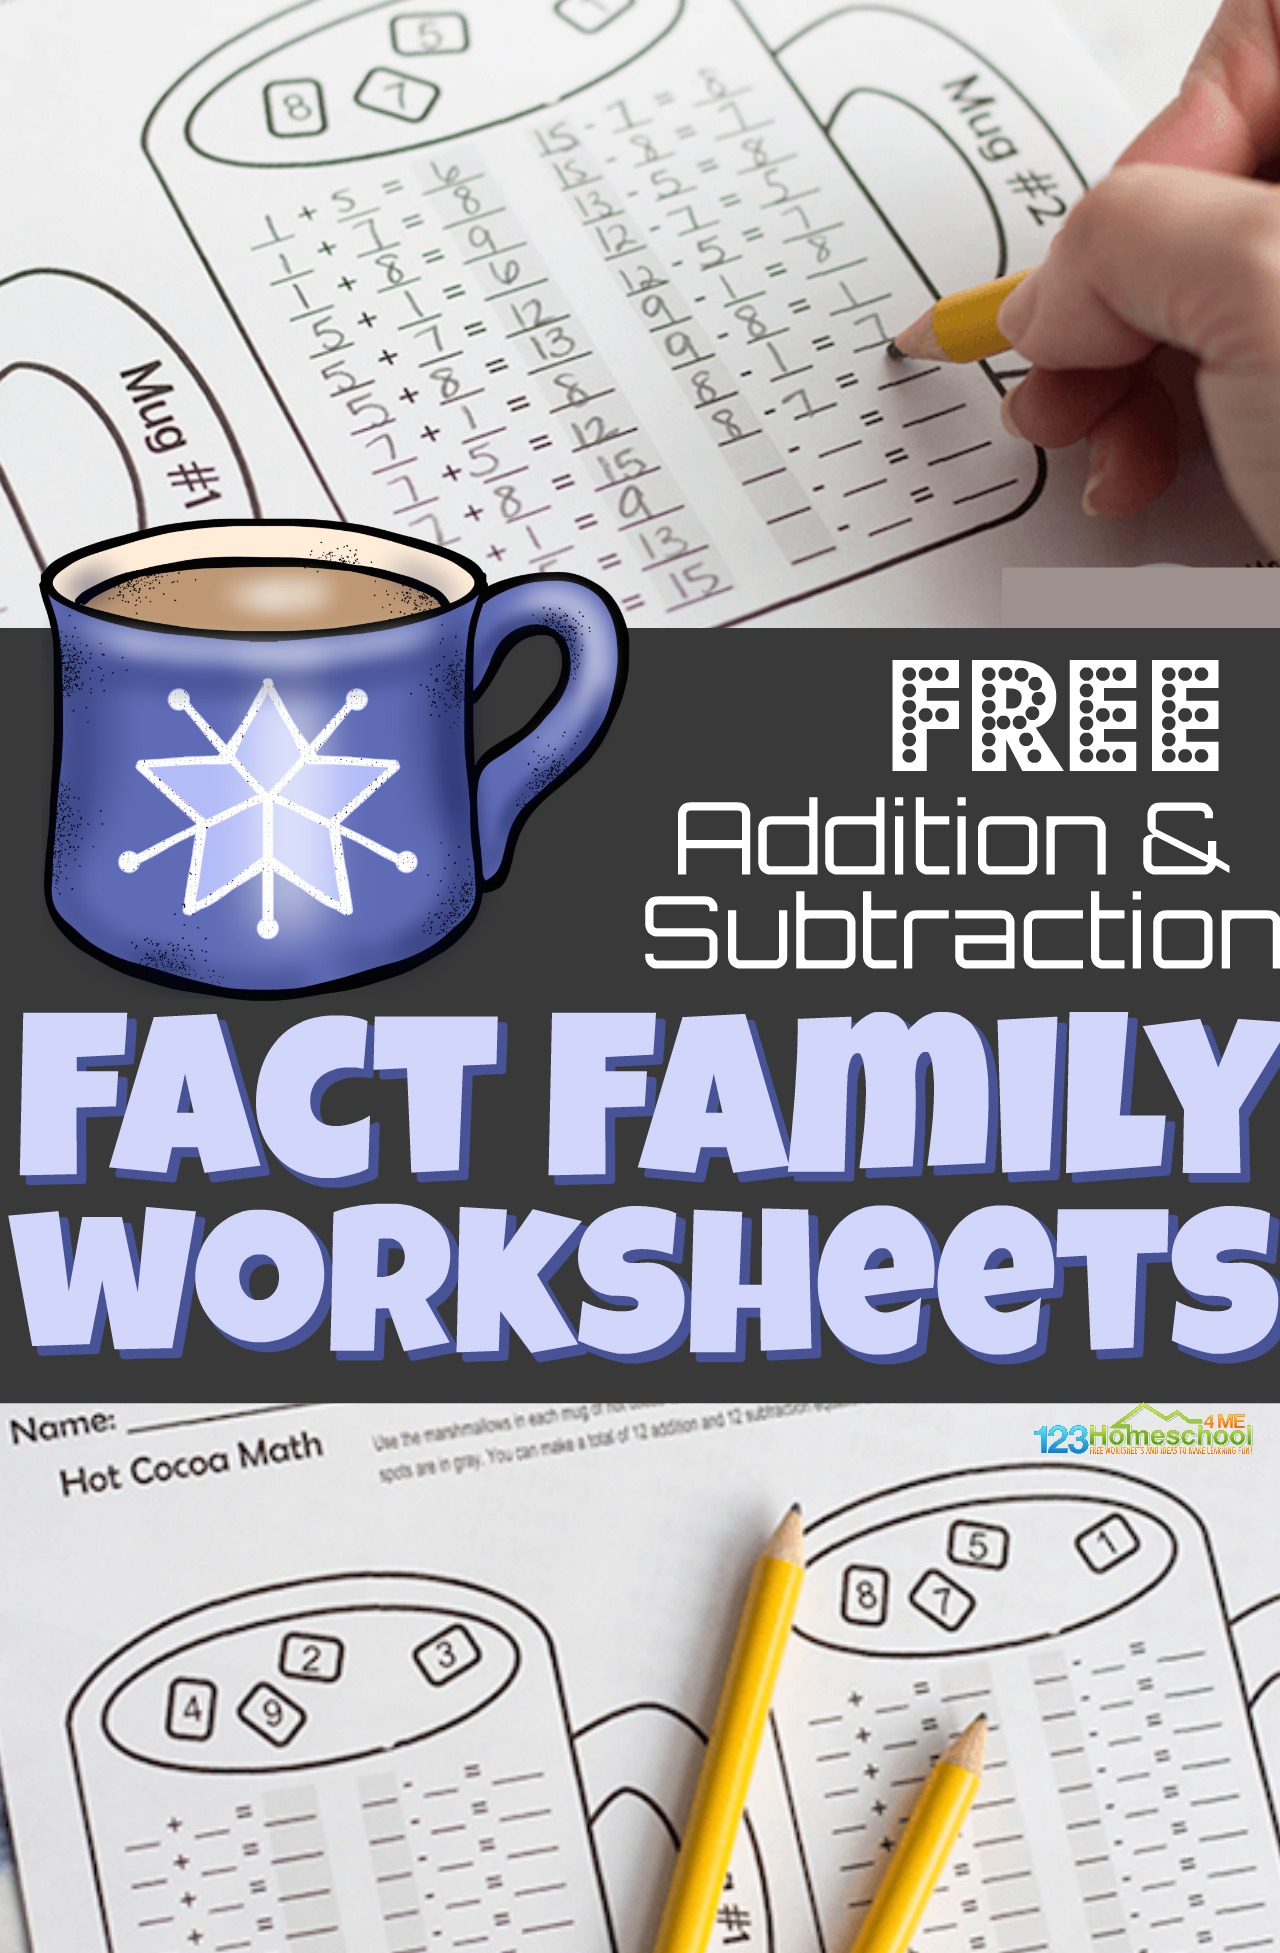 hight resolution of FREE Hot Chocolate Addition and Subtraction Fact Family Worksheets